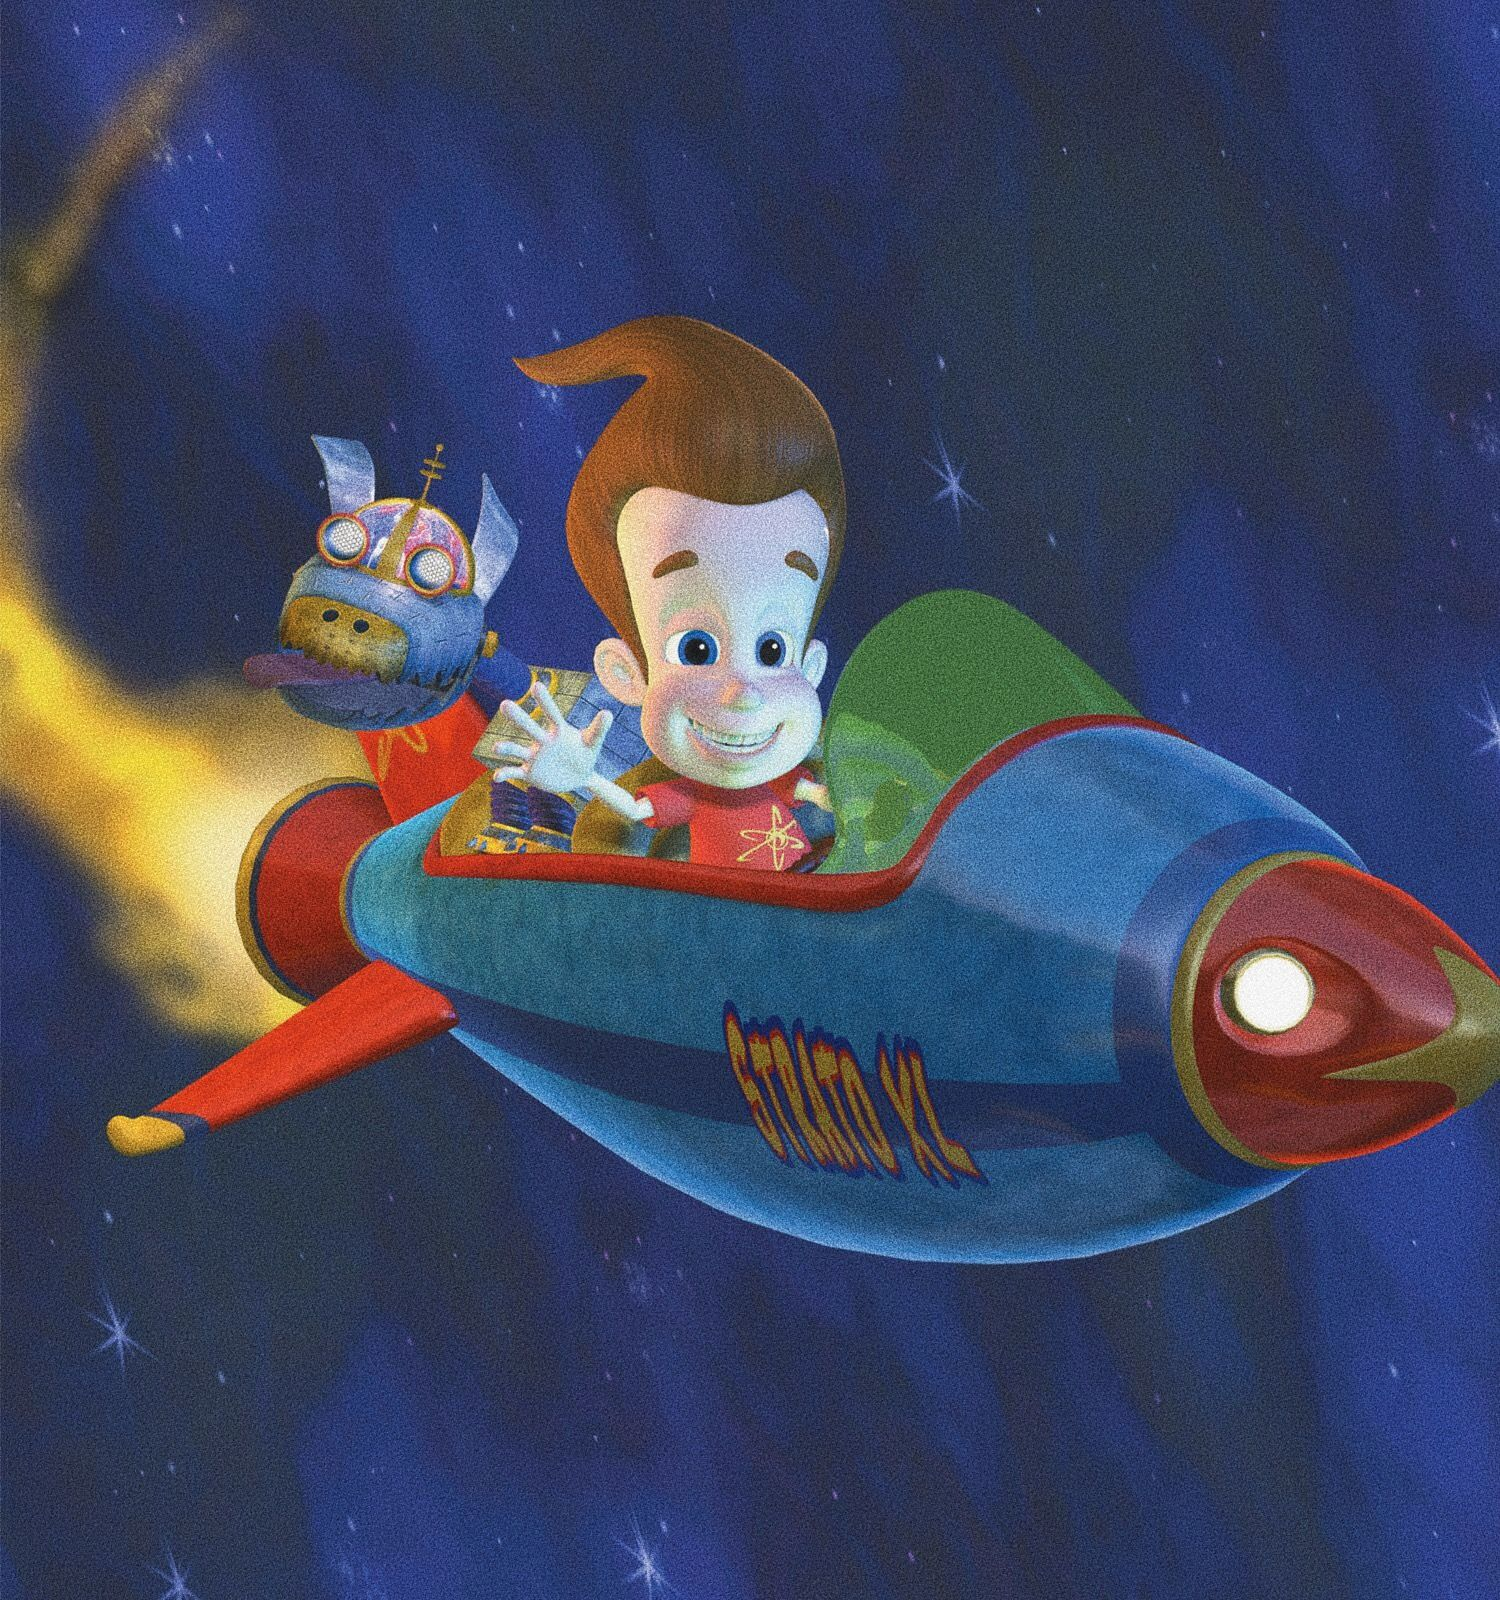 The Adventures Of Jimmy Neutron Boy Genius Jimmy Neutron 90s Cartoon Characters 2000s Kids Shows